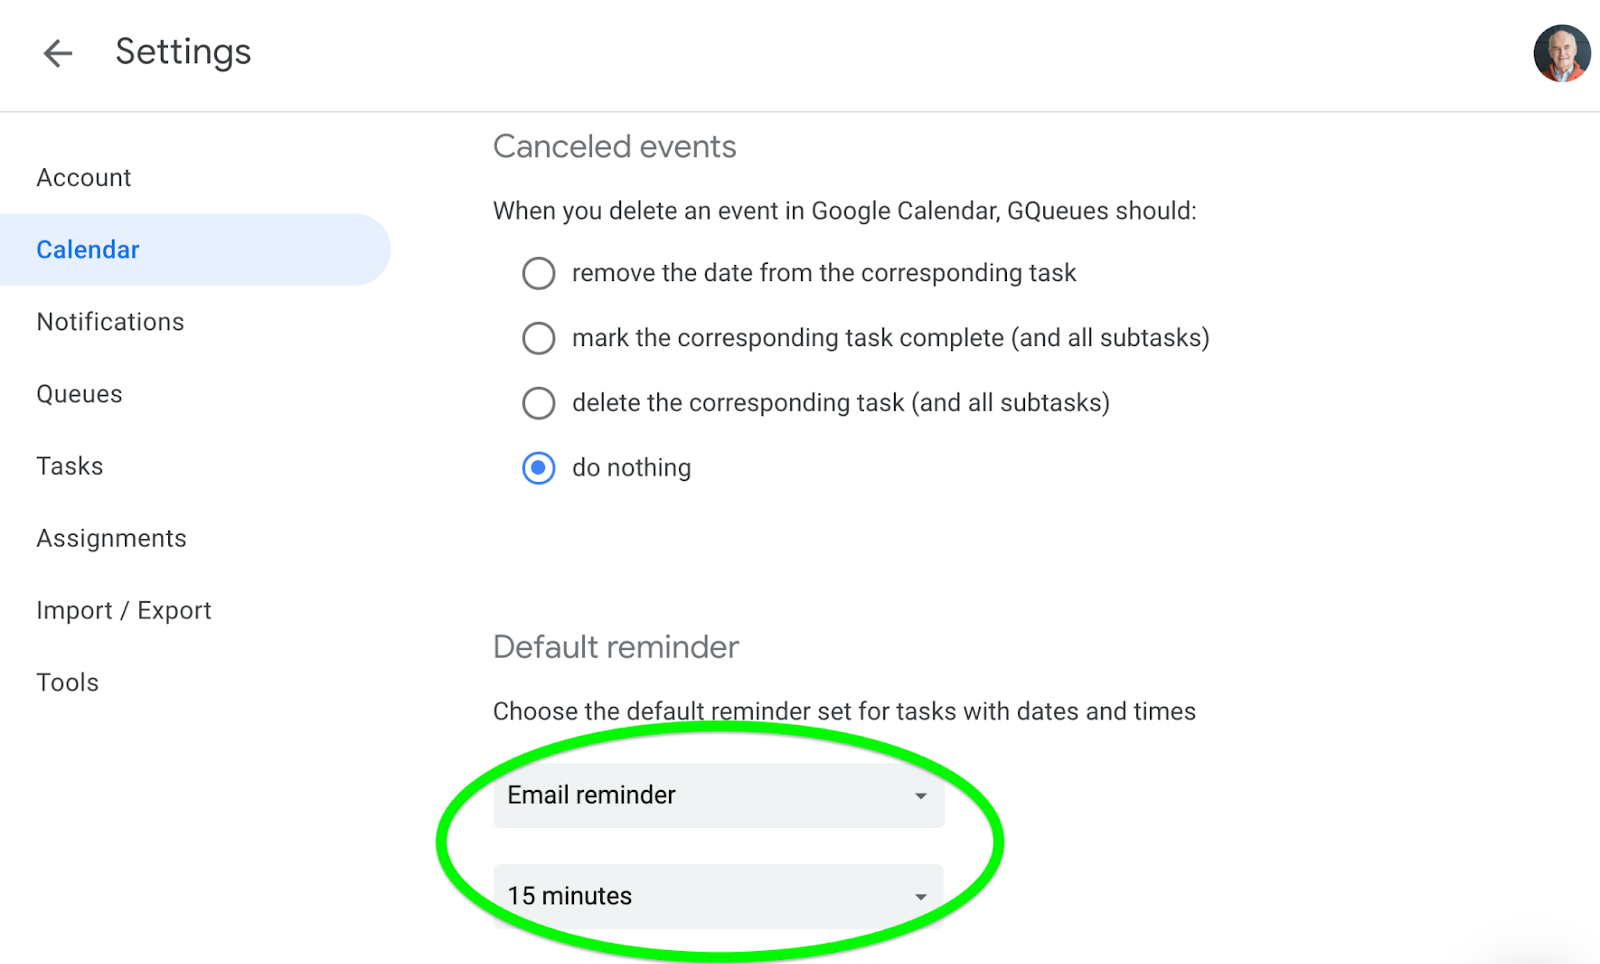 Set default reminder for any newly created tasks from your settings